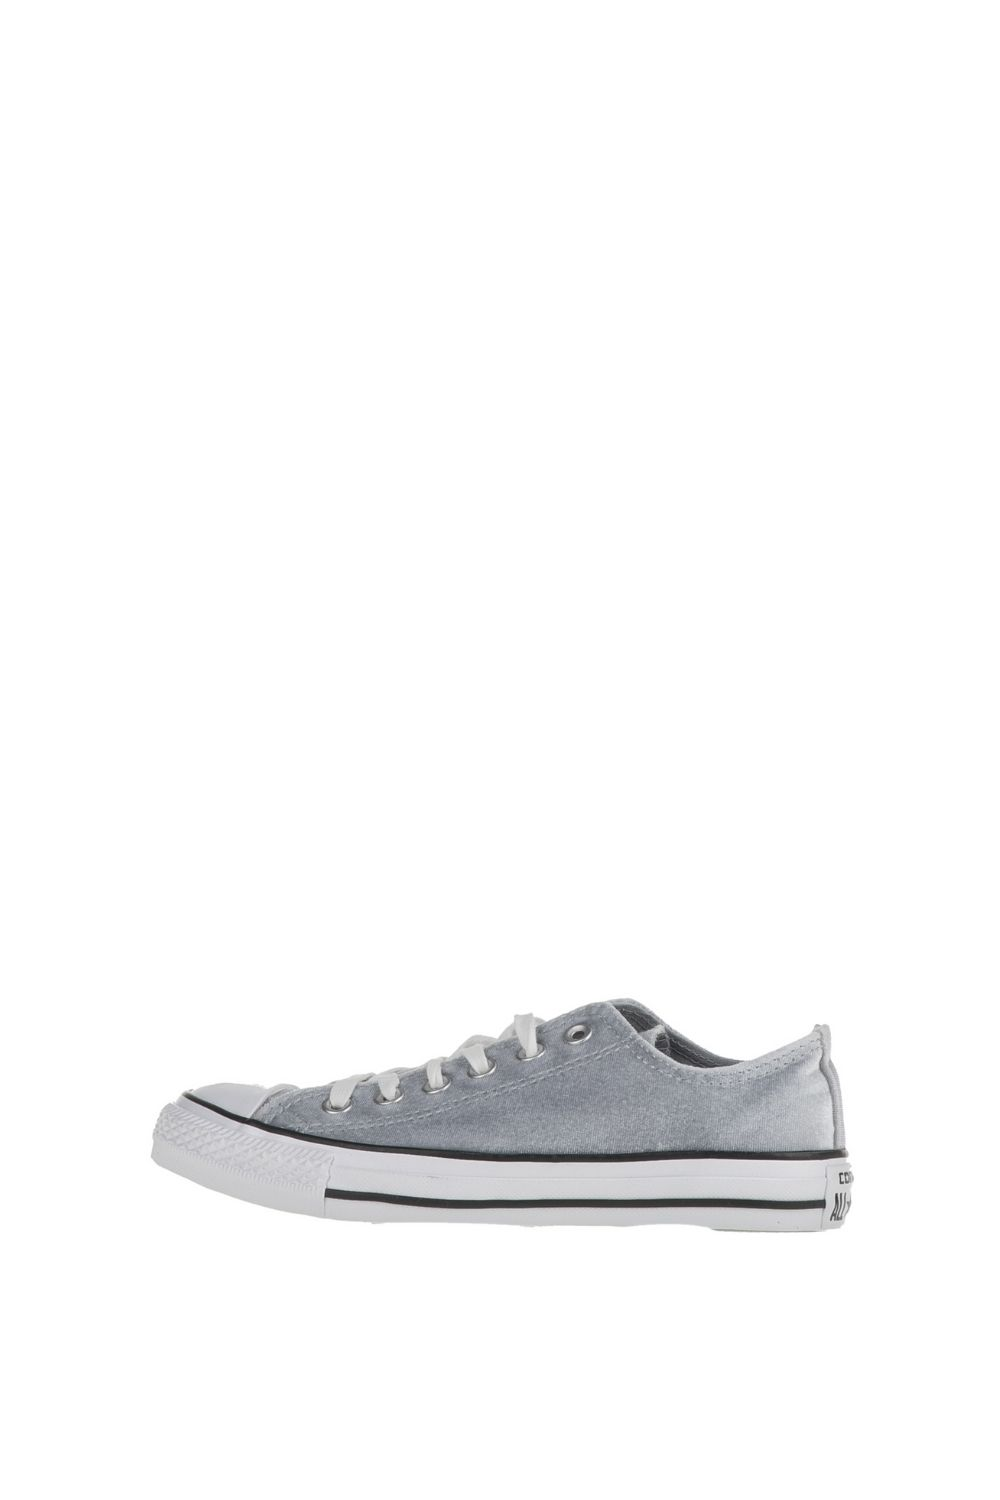 -48% Collective Online CONVERSE – Γυναικεία sneakers Chuck Taylor All Star  Ox γκρι βελουτέ 70c81930277